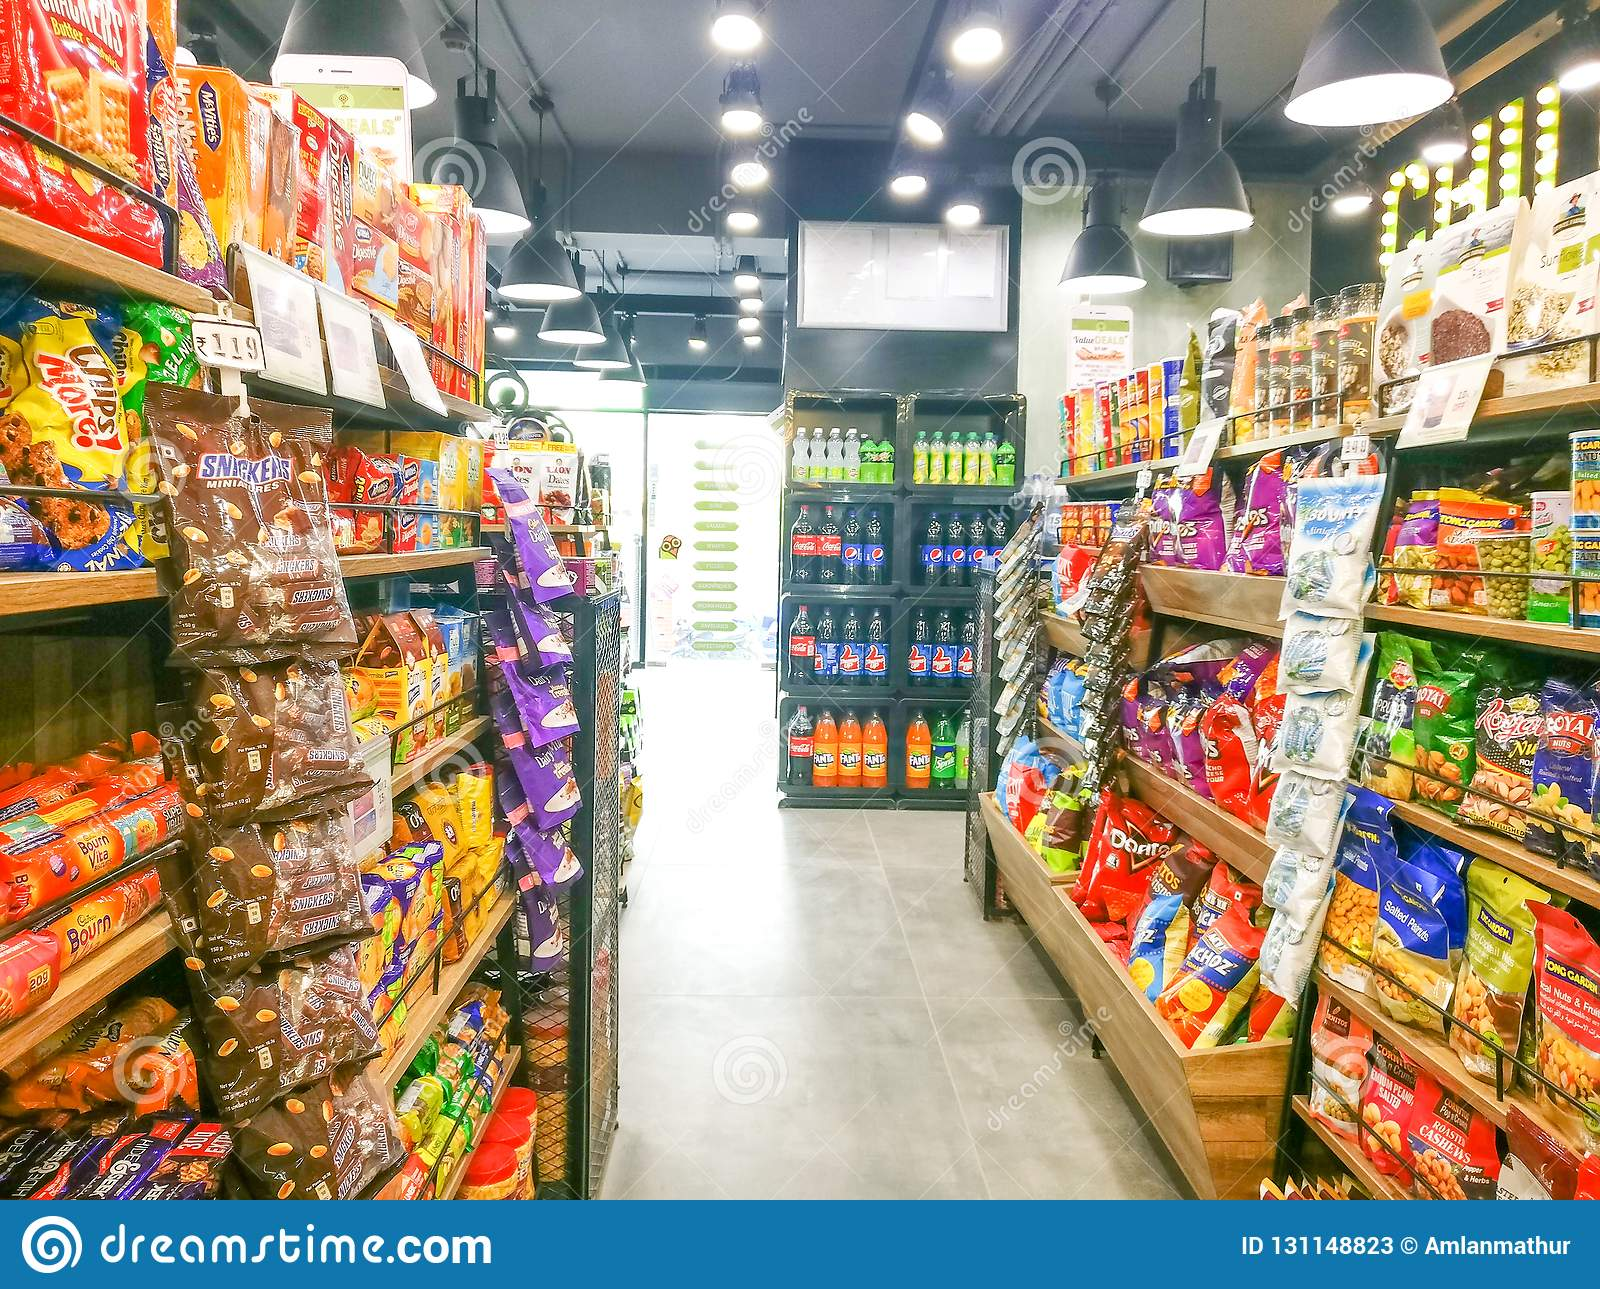 Supermarket Shelves Filled With Fmcg Grocery Products